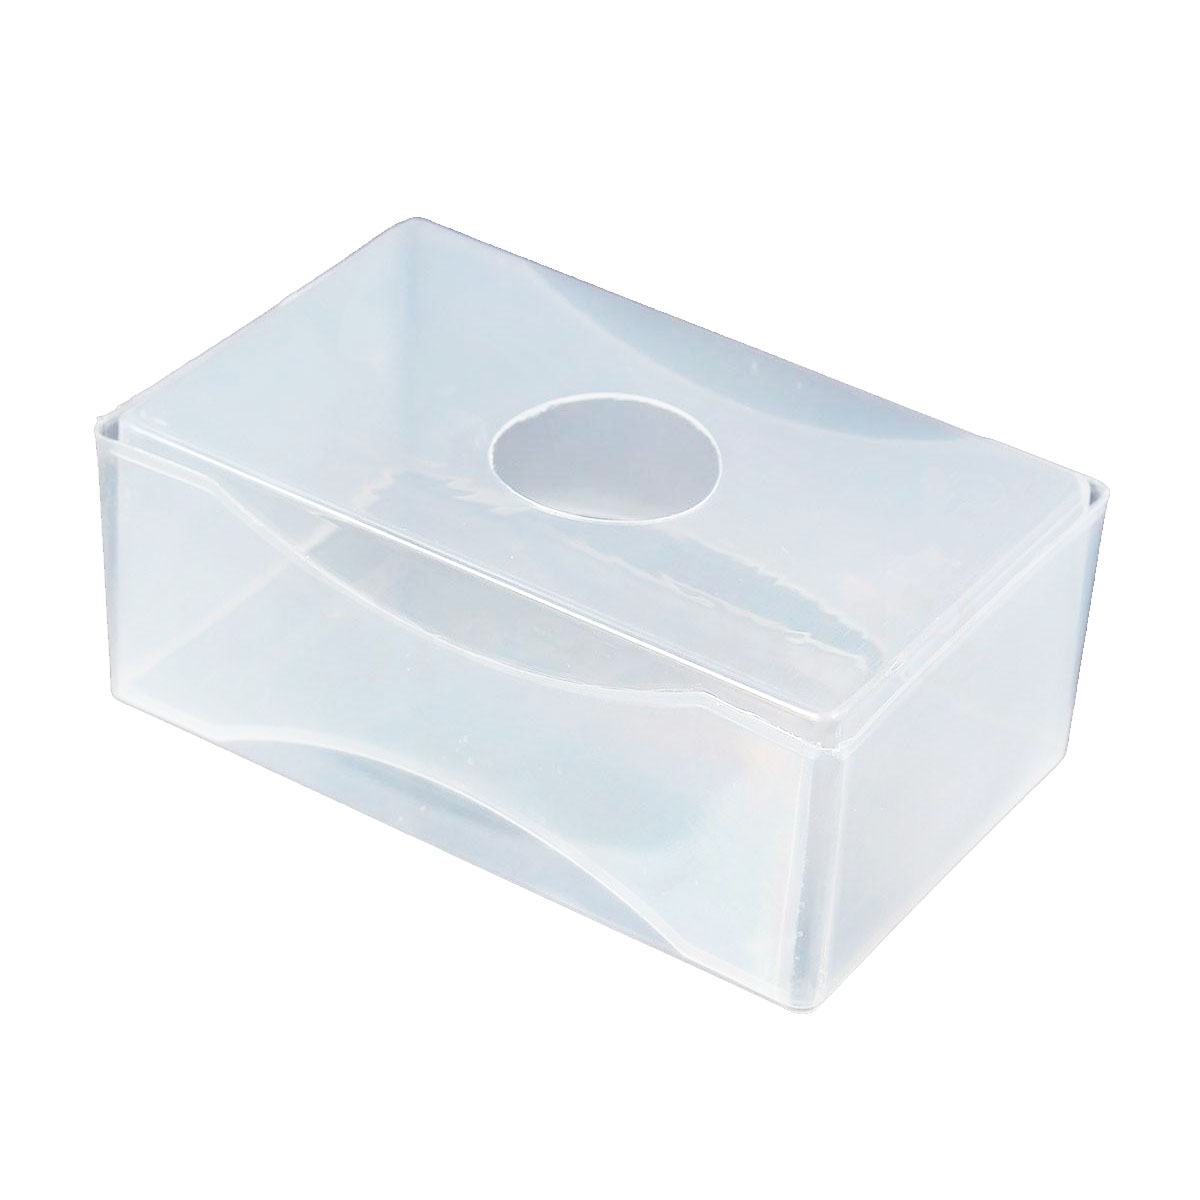 10 X Business Card Box Plastic Holders Clear Craft Beads Container Storage Boxes White